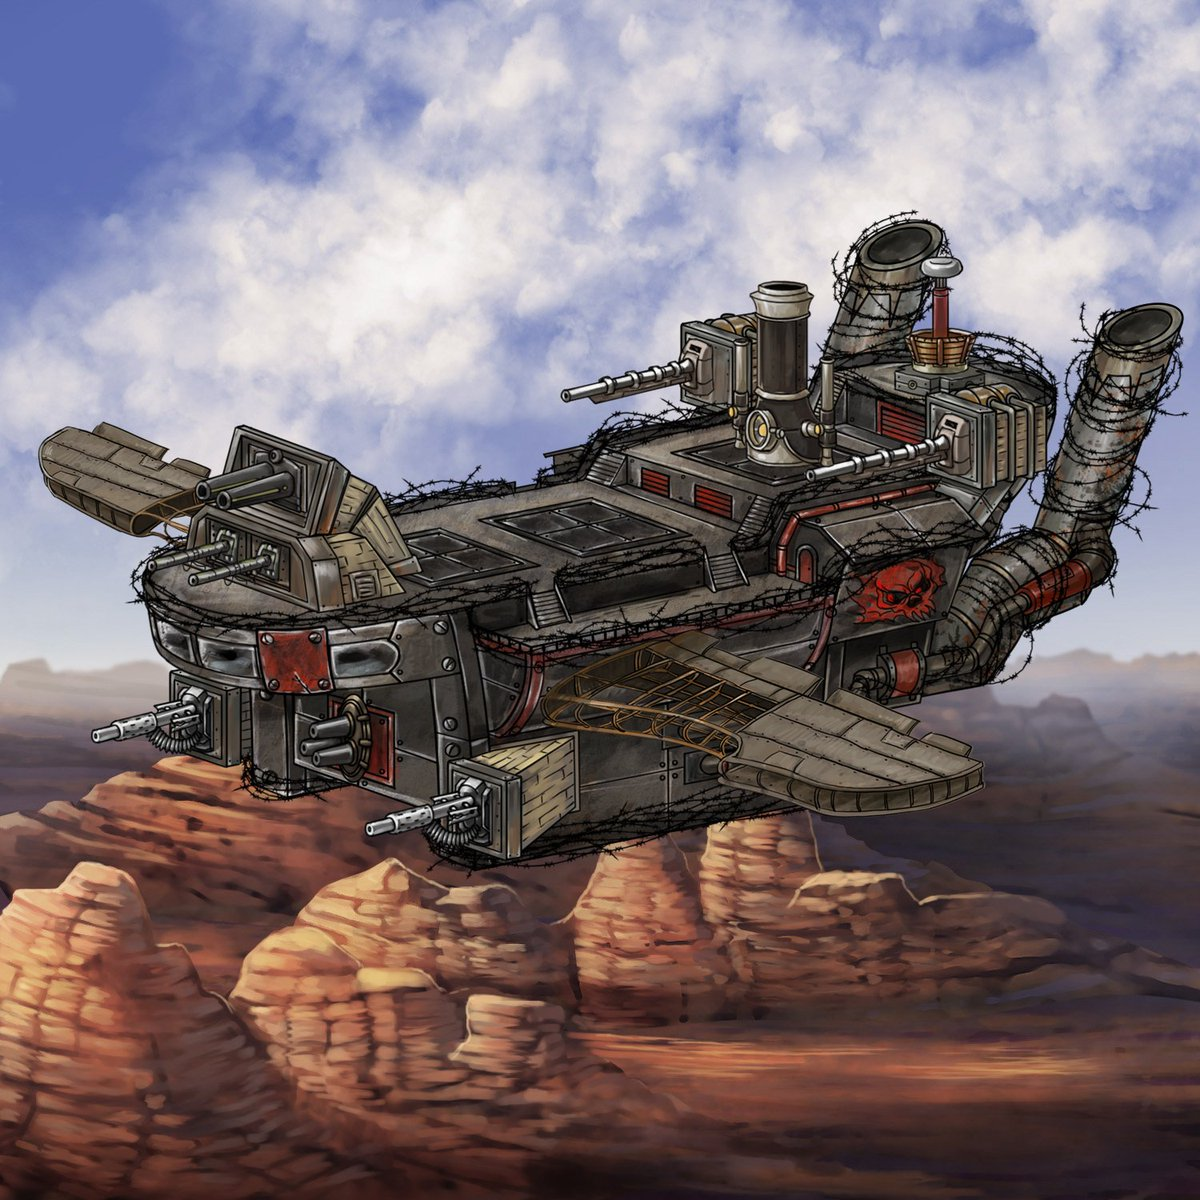 Age of Grit, a #CRPG with #cowboys and #steampunk airships! Help us out on @ThunderclapIt! https://t.co/Wz0PRPBpV6